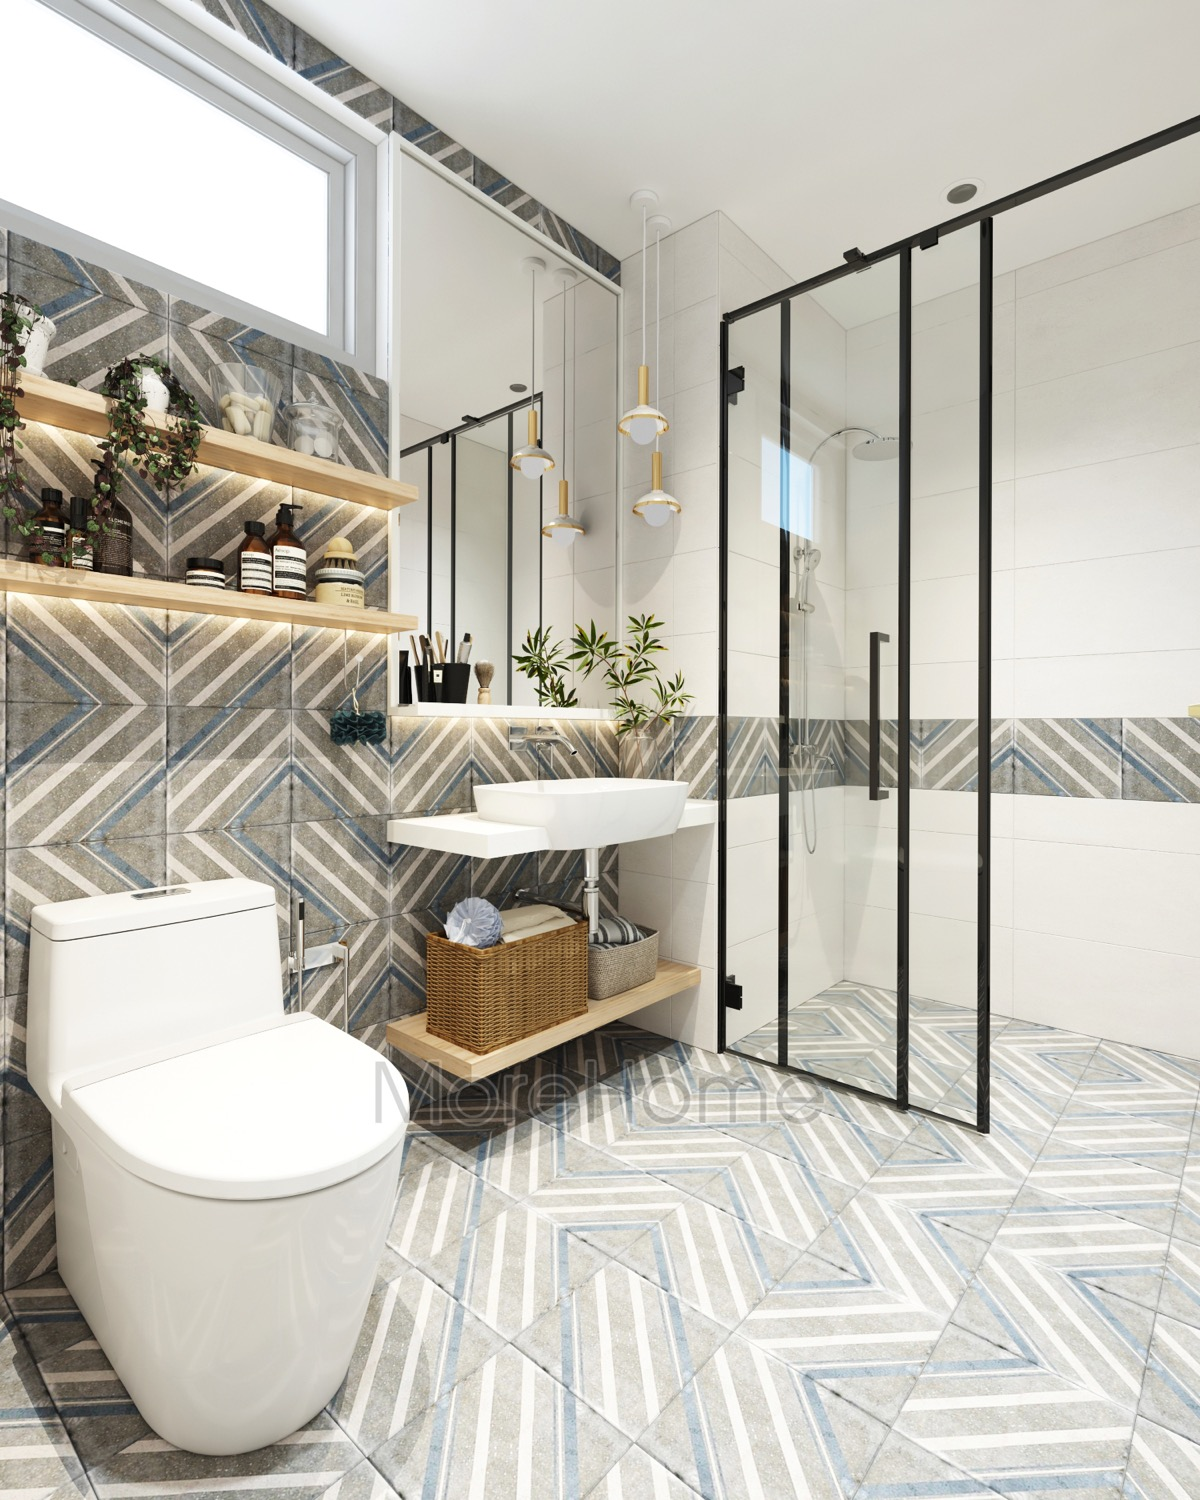 40 Modern Bathroom Vanities That Overflow With Style images 36